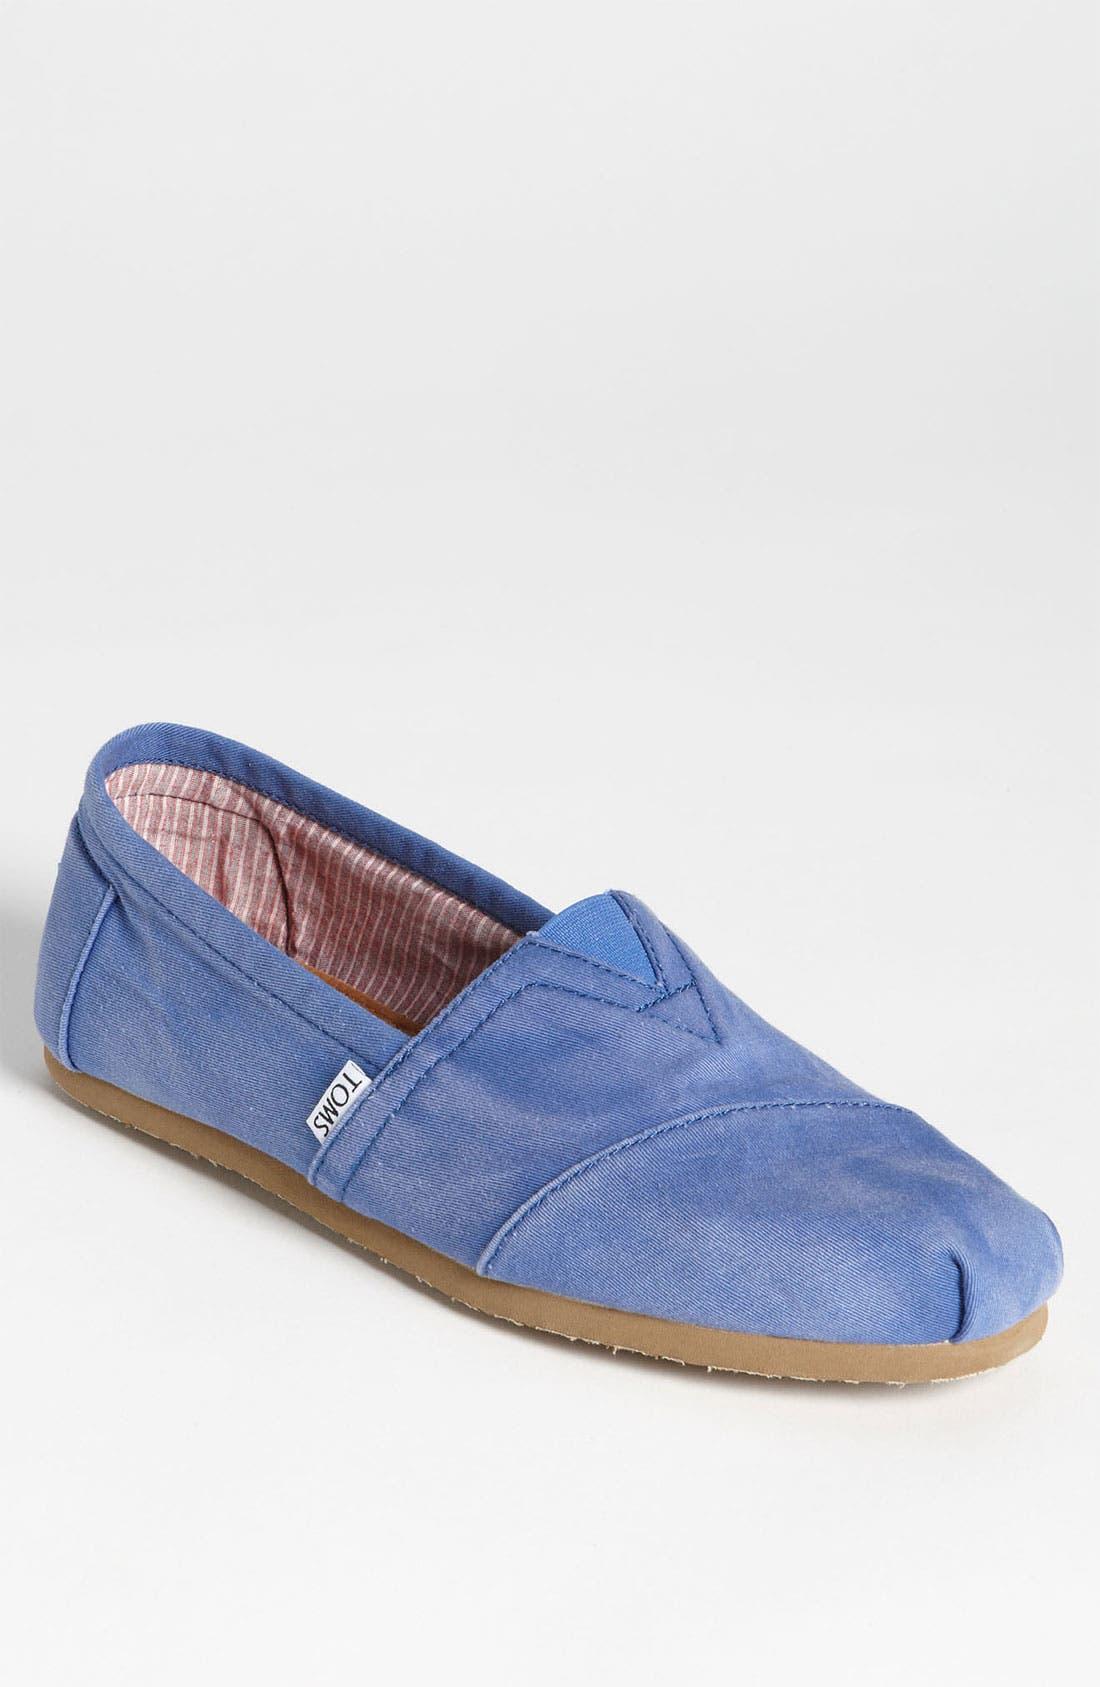 Alternate Image 1 Selected - TOMS 'Classic' Stonewashed Twill Slip-On (Men)